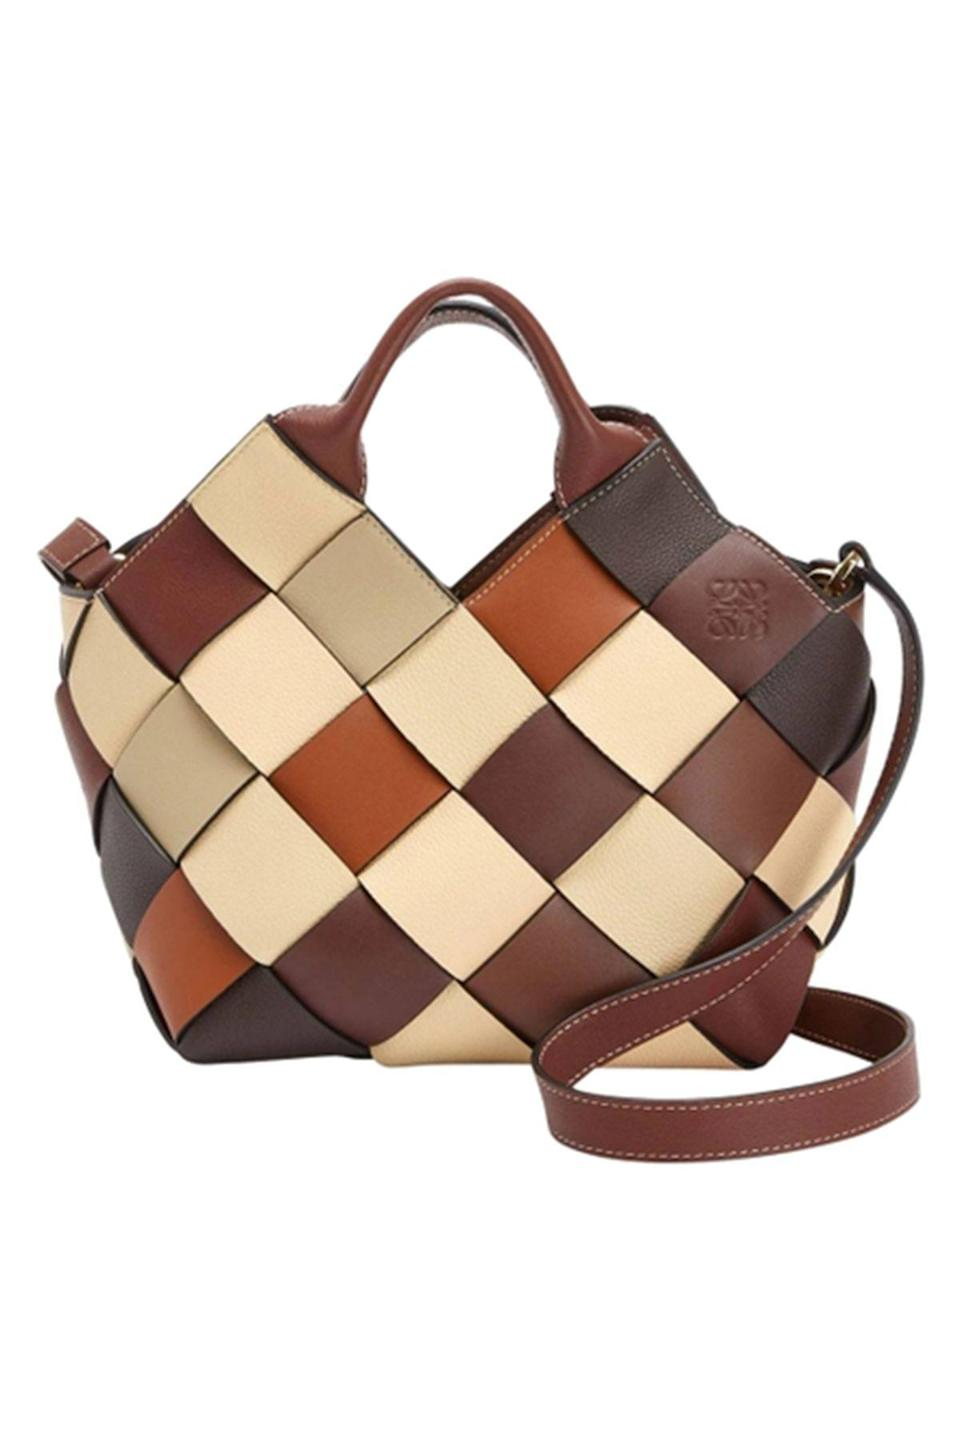 """<p><strong>Loewe</strong></p><p>thewebster.us</p><p><strong>$2350.00</strong></p><p><a href=""""https://go.redirectingat.com?id=74968X1596630&url=https%3A%2F%2Fthewebster.us%2Fshop%2Fsmall-color-block-woven-basket-tote-bag.html&sref=https%3A%2F%2Fwww.townandcountrymag.com%2Fstyle%2Ffashion-trends%2Fg36120168%2Fbest-sustainable-brands%2F"""" rel=""""nofollow noopener"""" target=""""_blank"""" data-ylk=""""slk:Shop Now"""" class=""""link rapid-noclick-resp"""">Shop Now</a></p><p>This handcrafted, woven bag comes from Loewe: Surplus Project, the brand's step towards sustainability, presented through accessories made from high quality surplus materials from previous collections. The house's signature smooth and soft-grained calfskin is meticulously braided together in a lattice formation to create this very responsible handbag. </p>"""